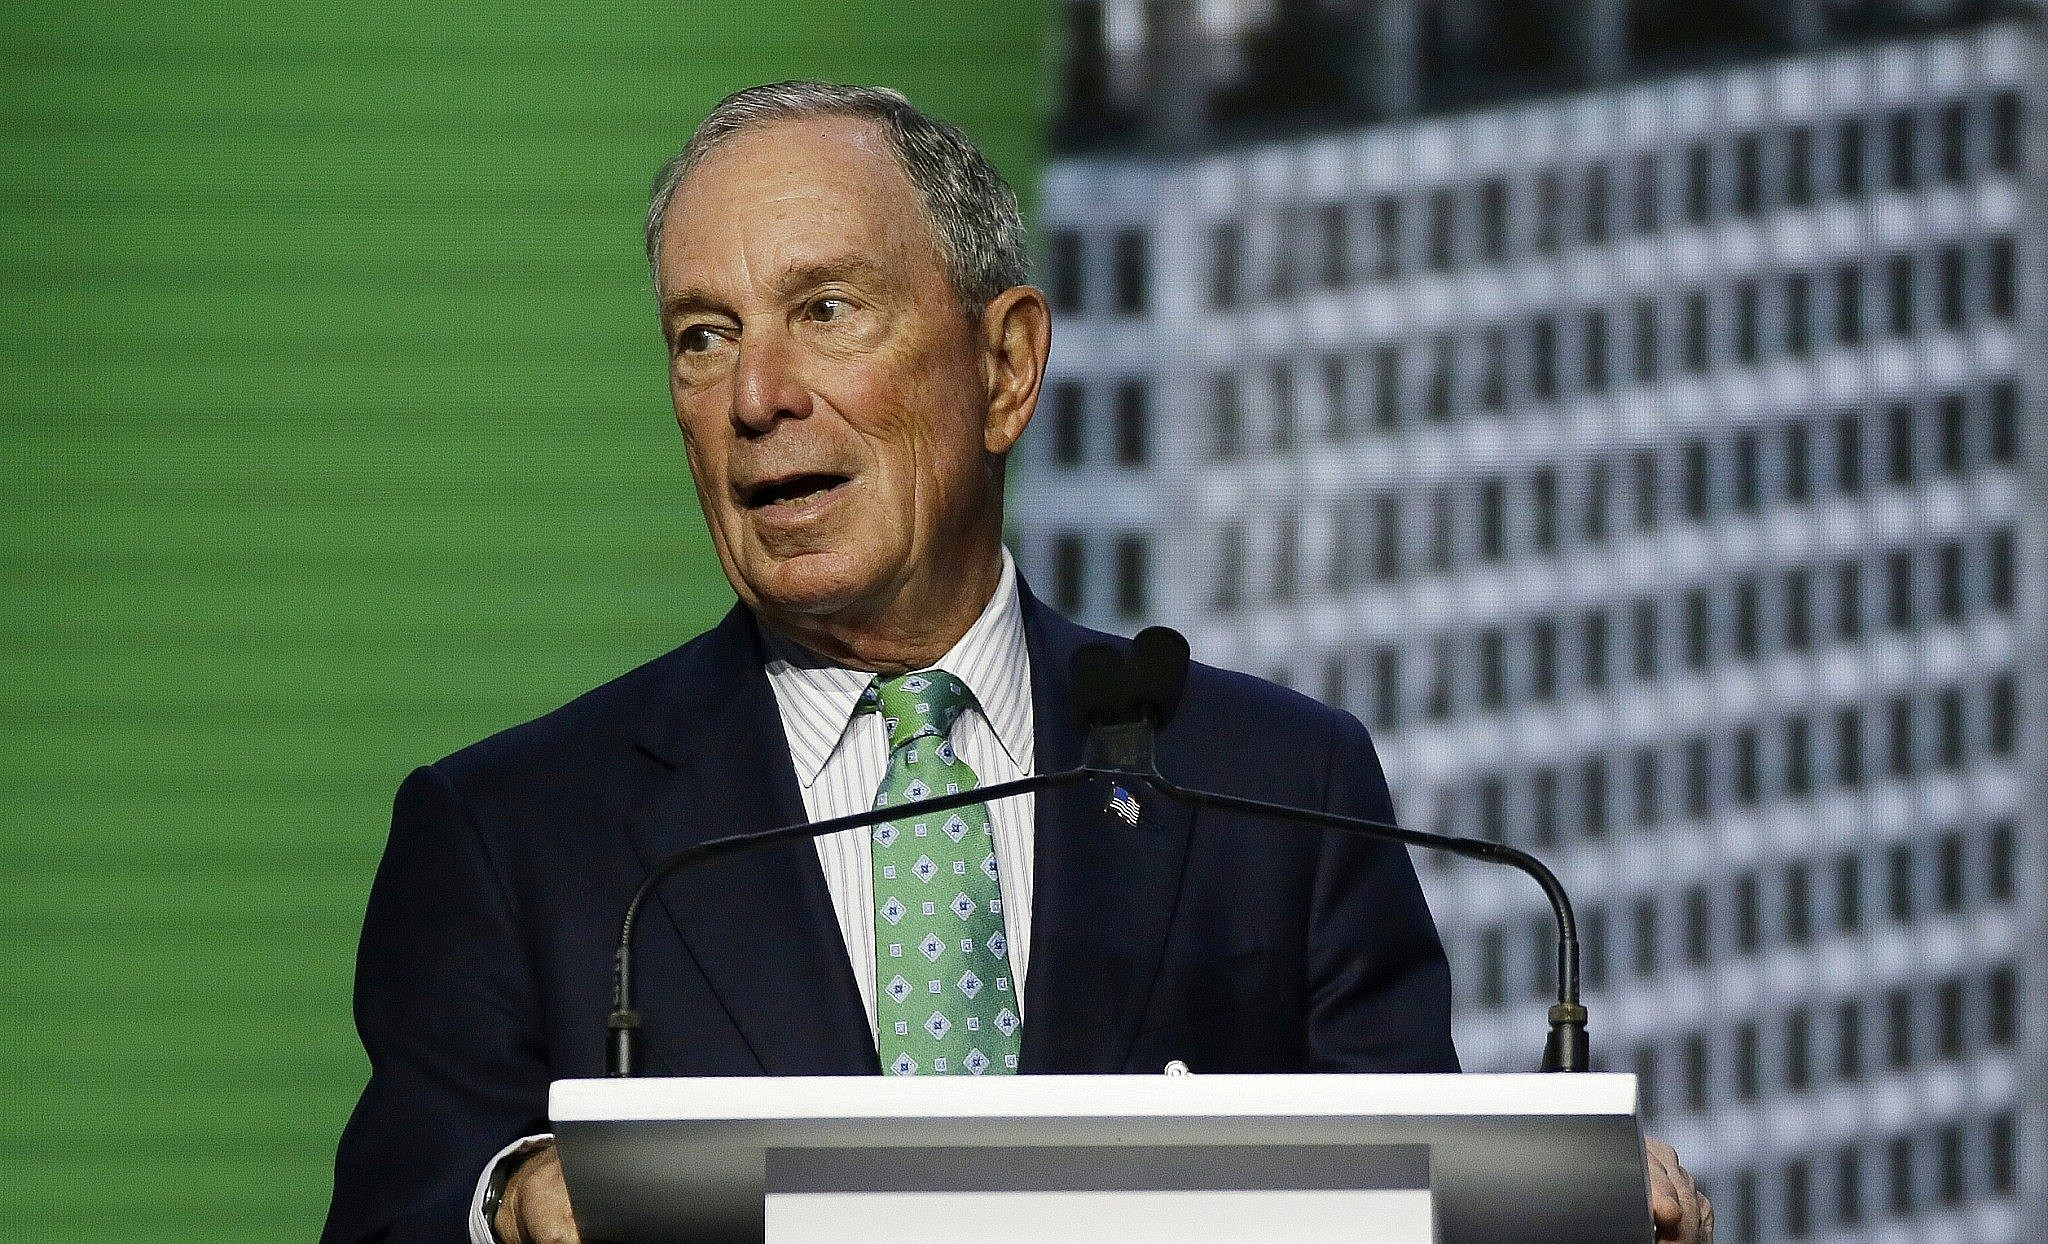 Michael Bloomberg re-registers as a Democrat, sparking 2020 debate online